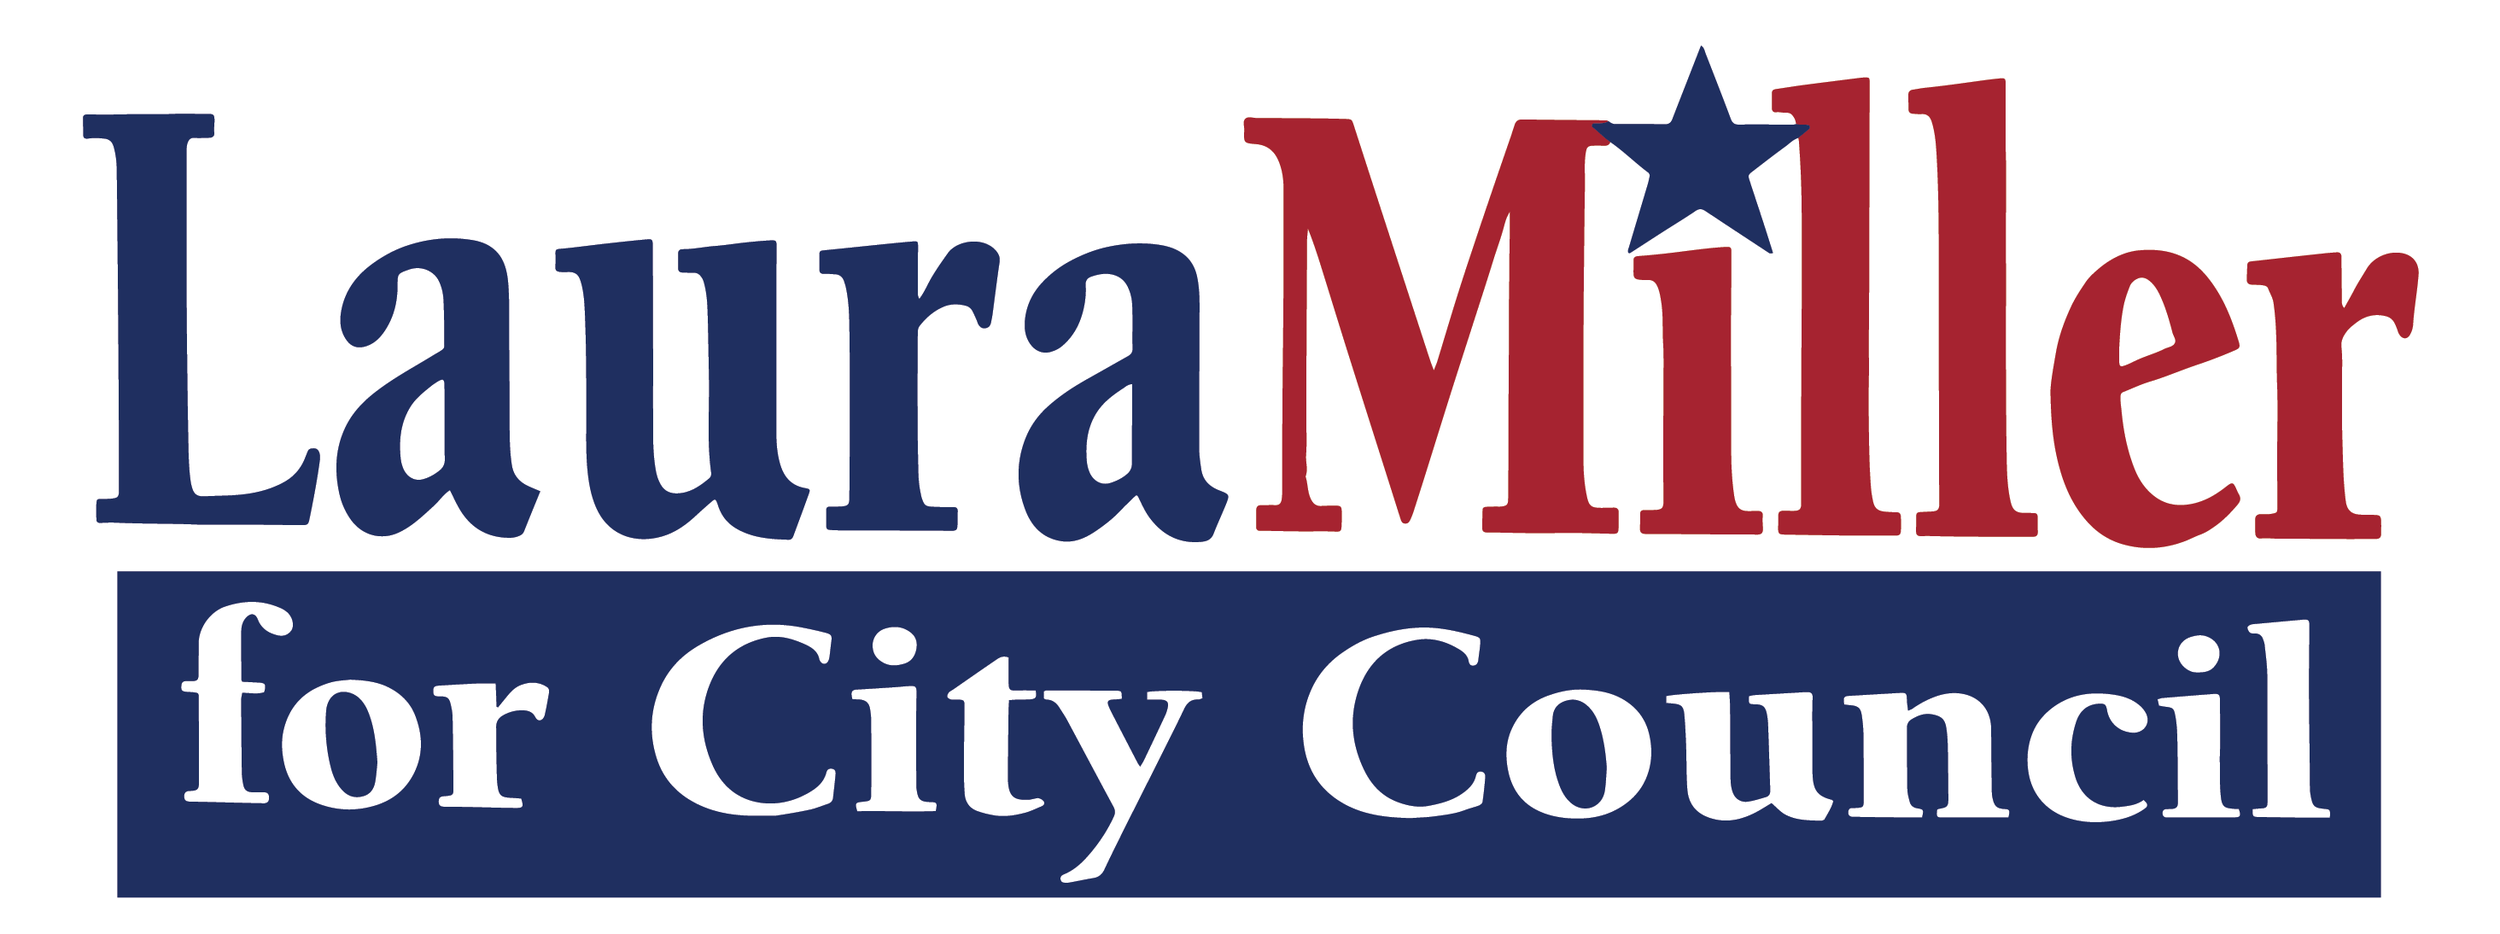 Laura Miller Campaign Logo_ICON.png